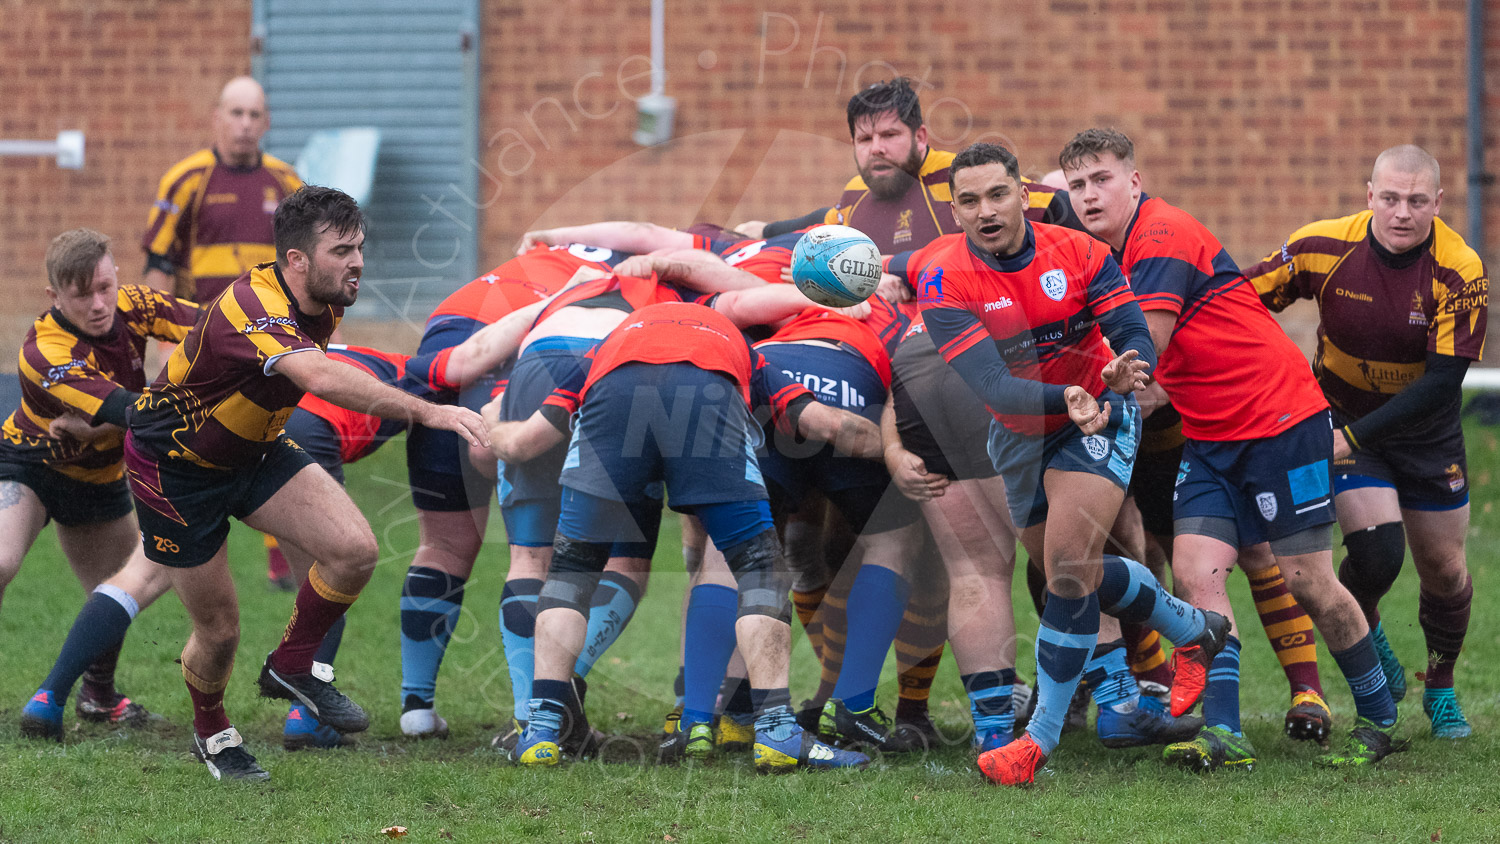 20181027 Amp Extras vs St Neots 2nd XV #2685